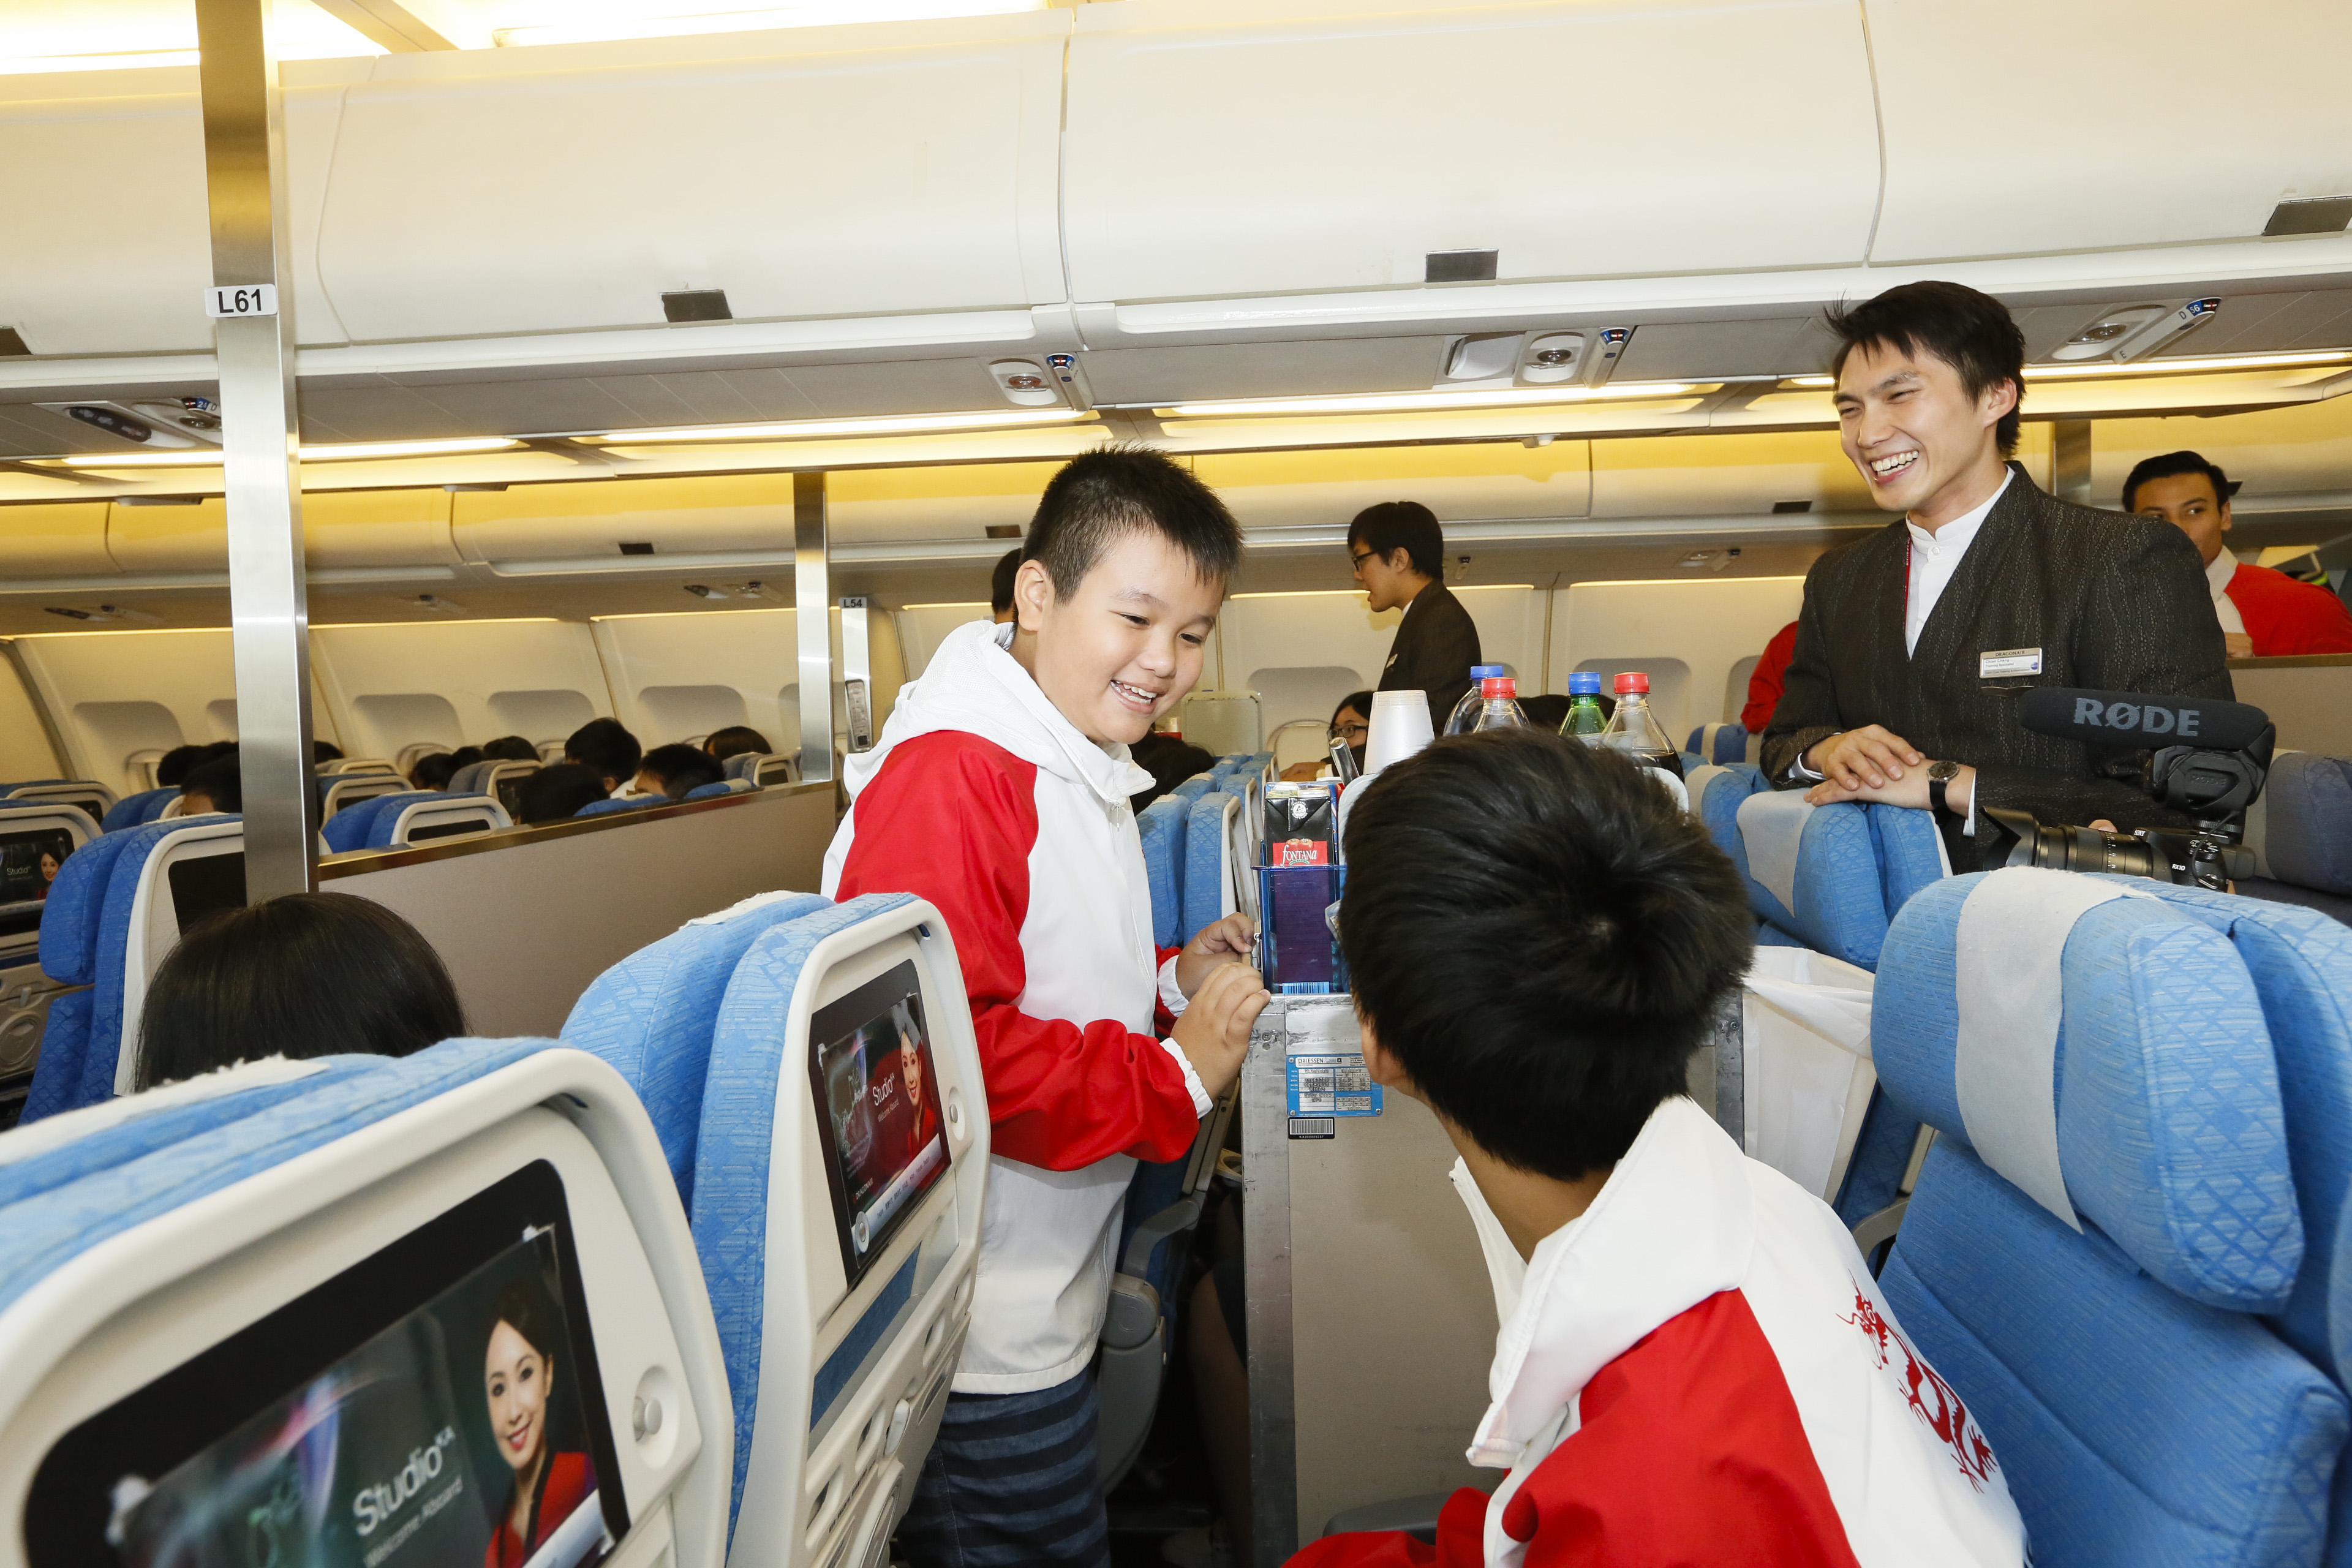 """Less-advantaged youngsters took part in Dragonair """"Journey of Dreams"""" aviation programme"""